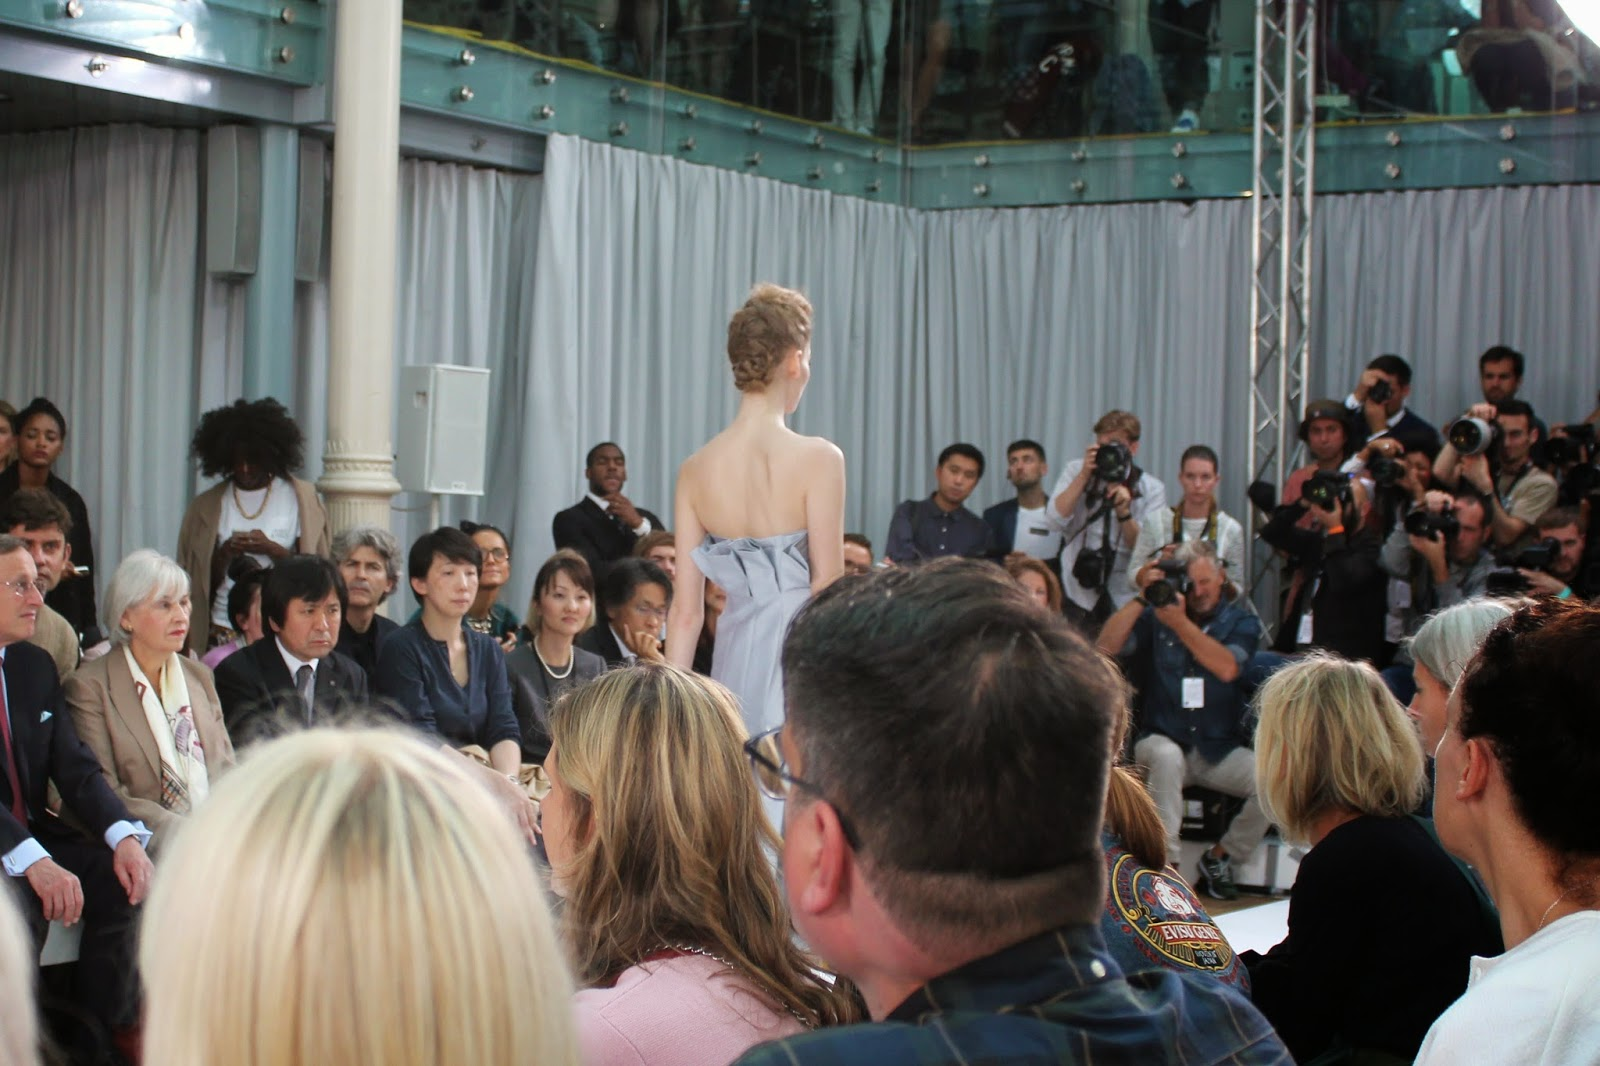 london-fashion-week-2014-lfw-DAKS-show-catwalk-spring-summer-2015-models-clothes-fashion-frow-royal-opera-house-dress-ruffles